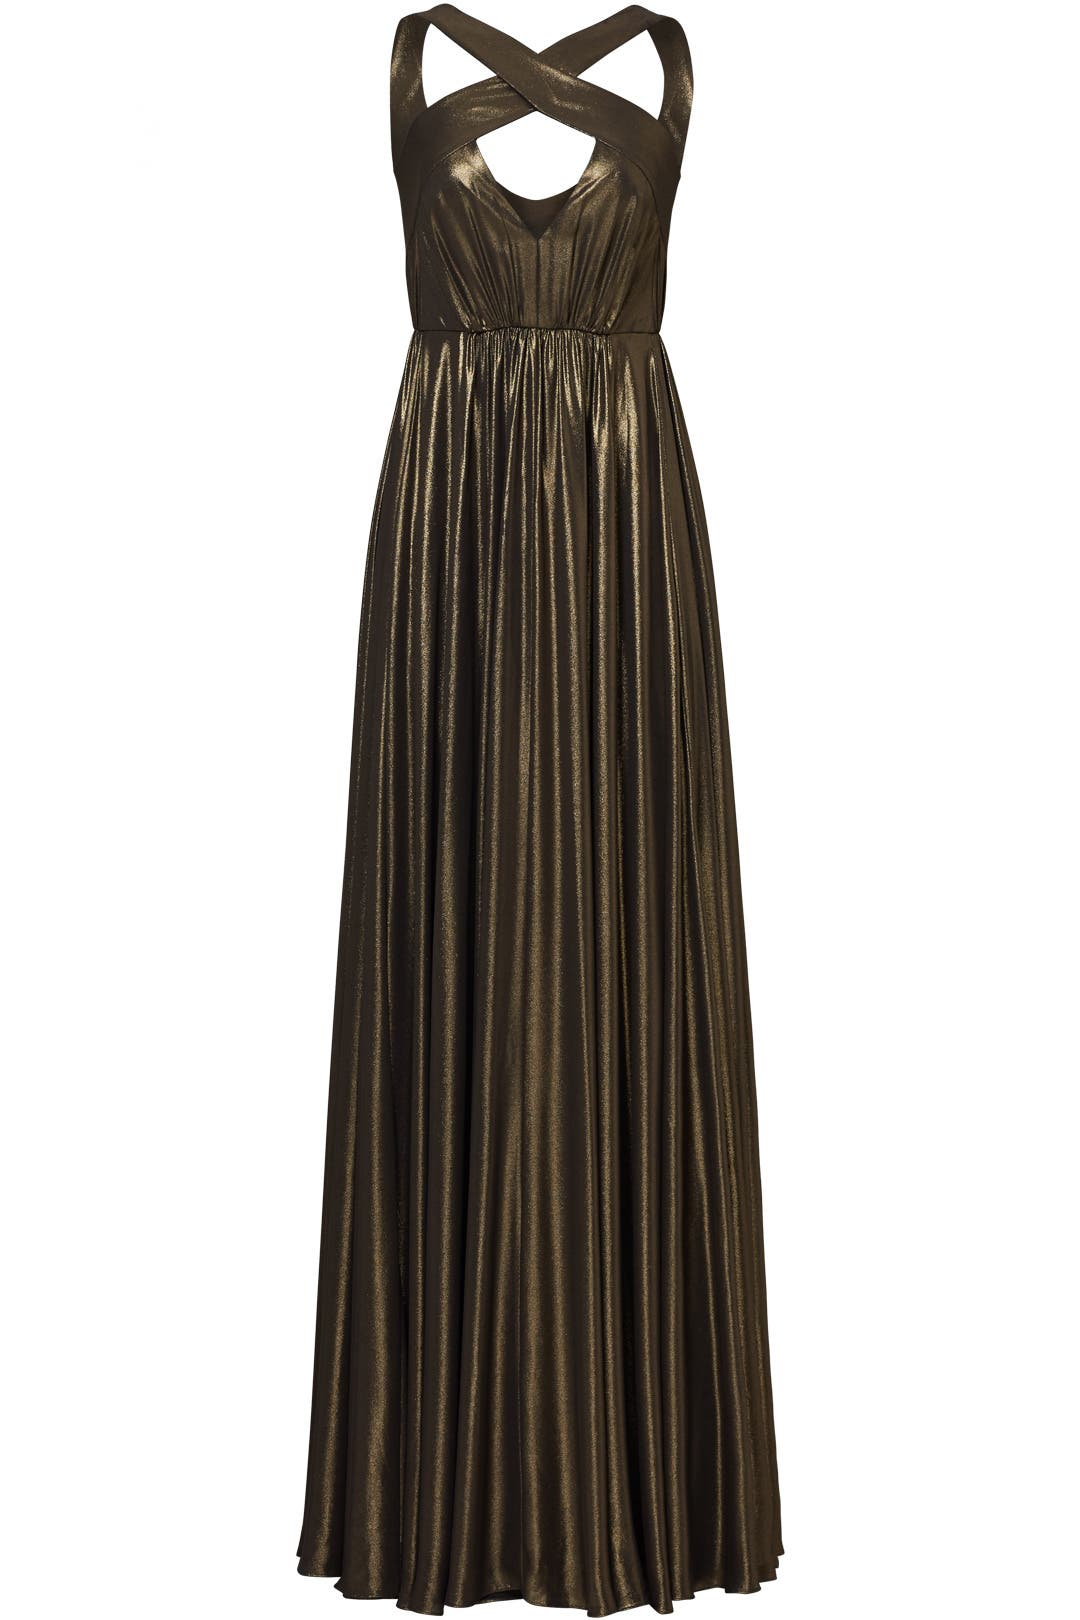 Bronze Flow Gown by Halston Heritage for $75   Rent the Runway